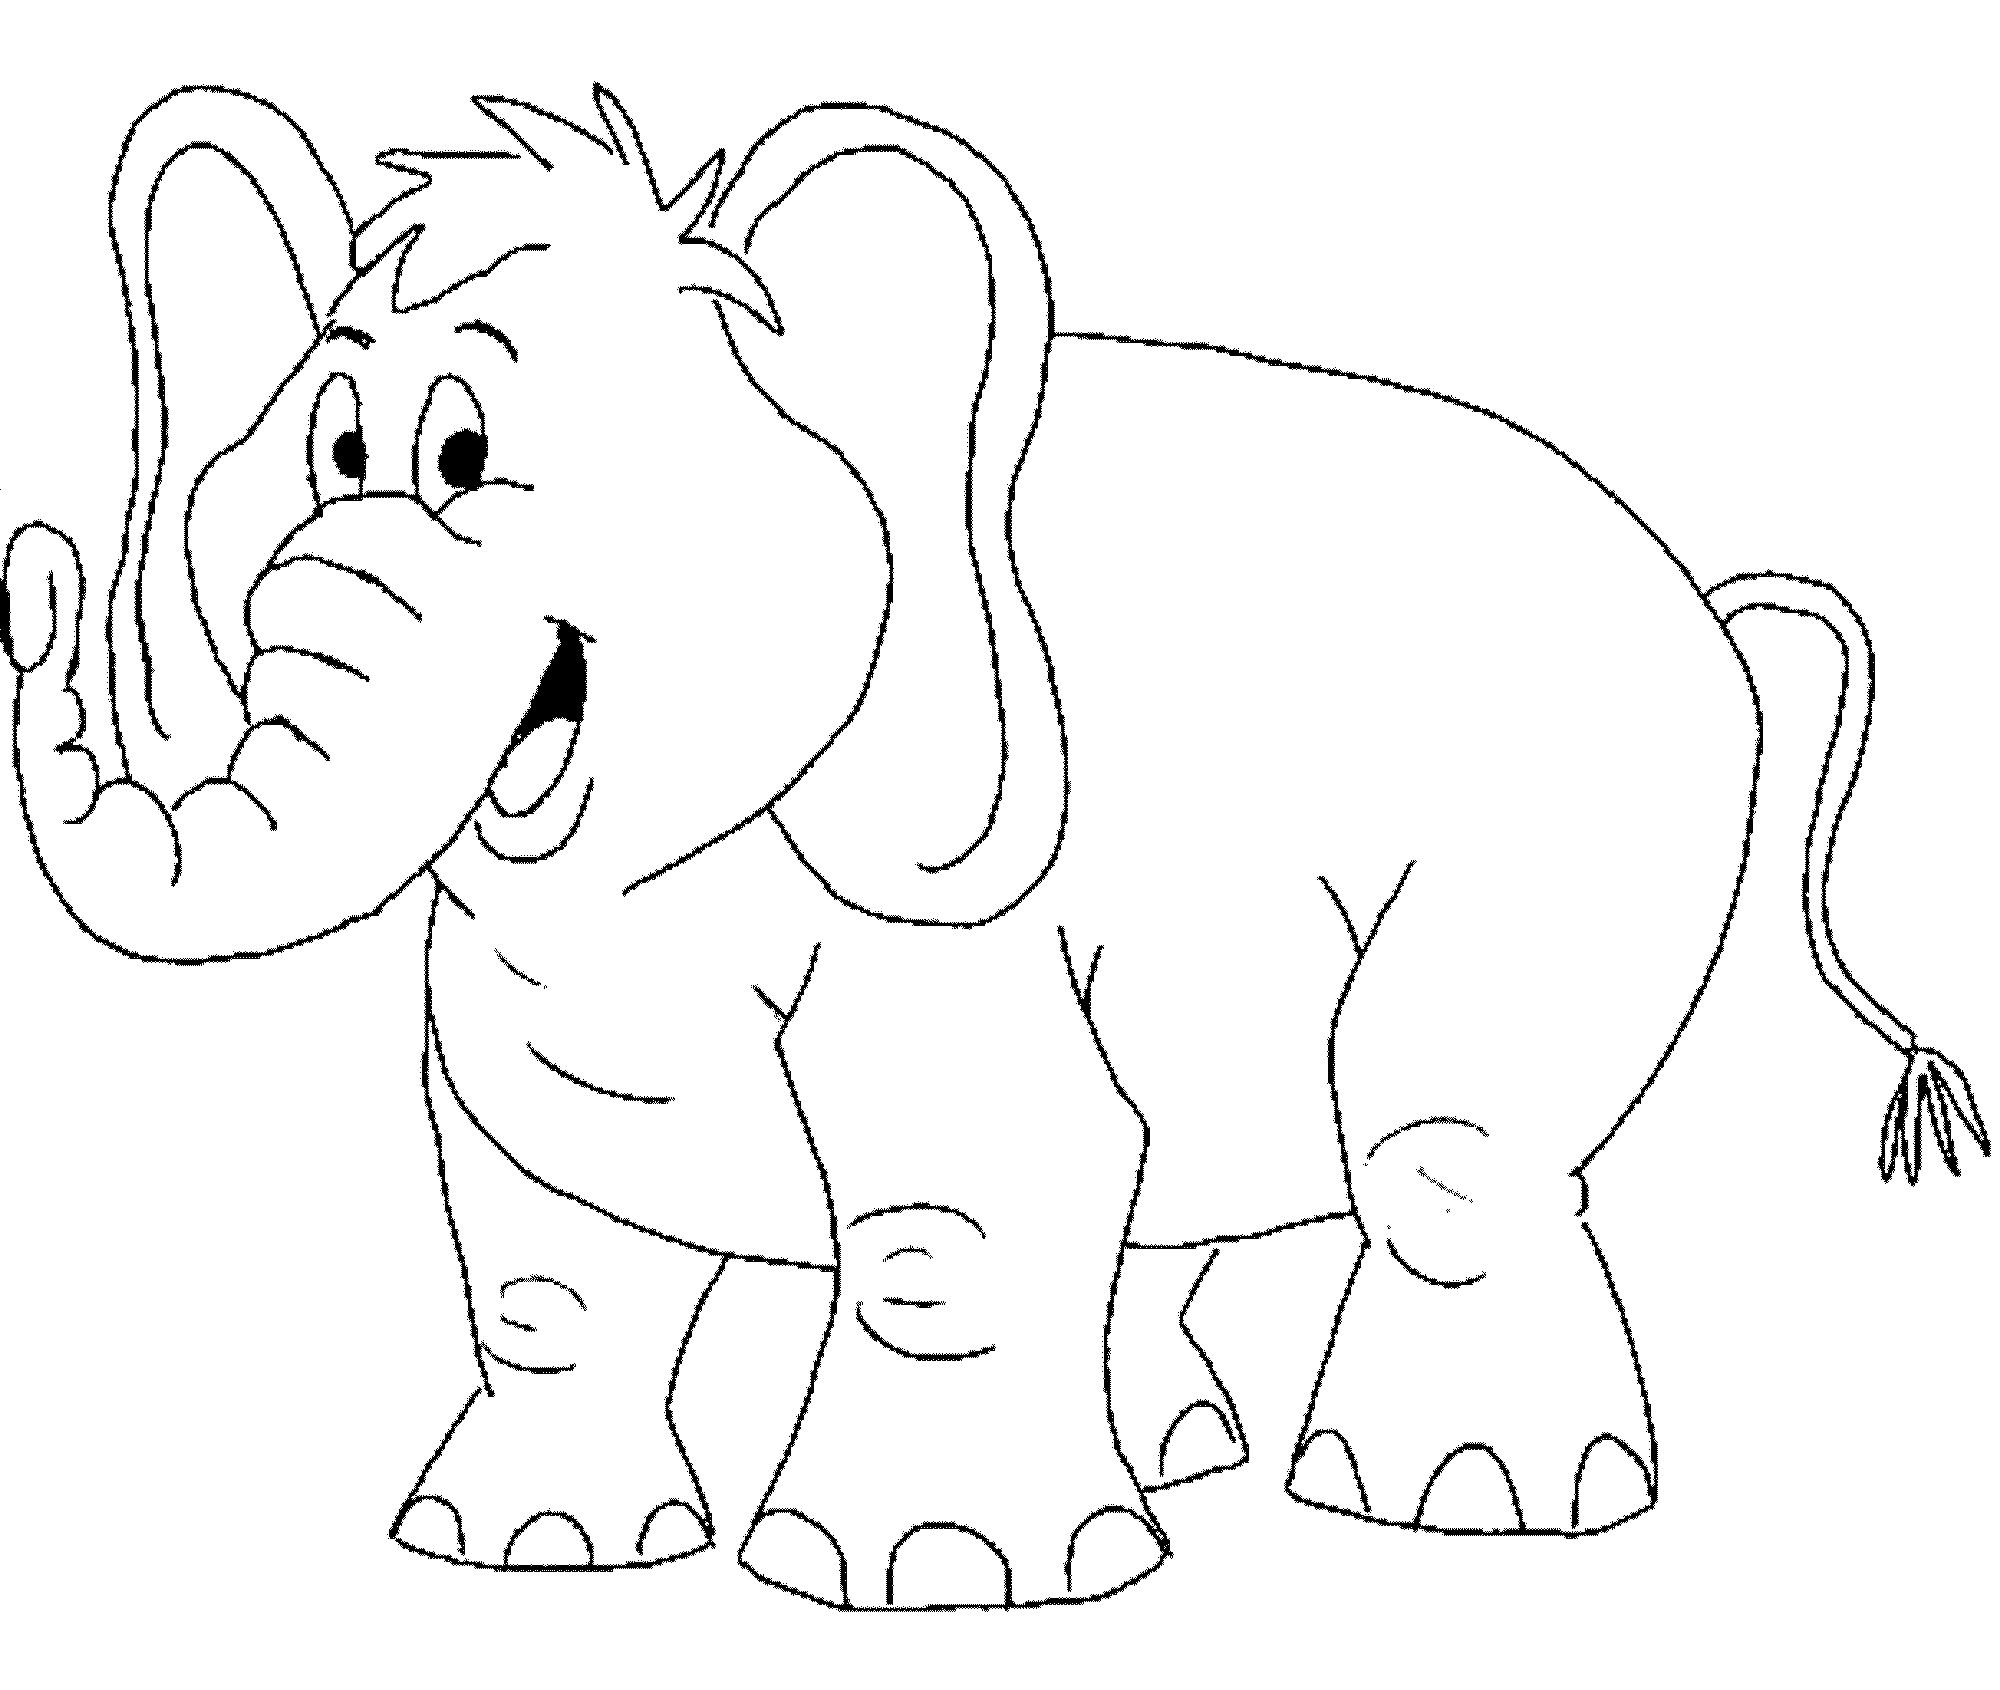 colouring pictures of elephant elephant coloring pages for toddlers bestappsforkidscom of colouring elephant pictures